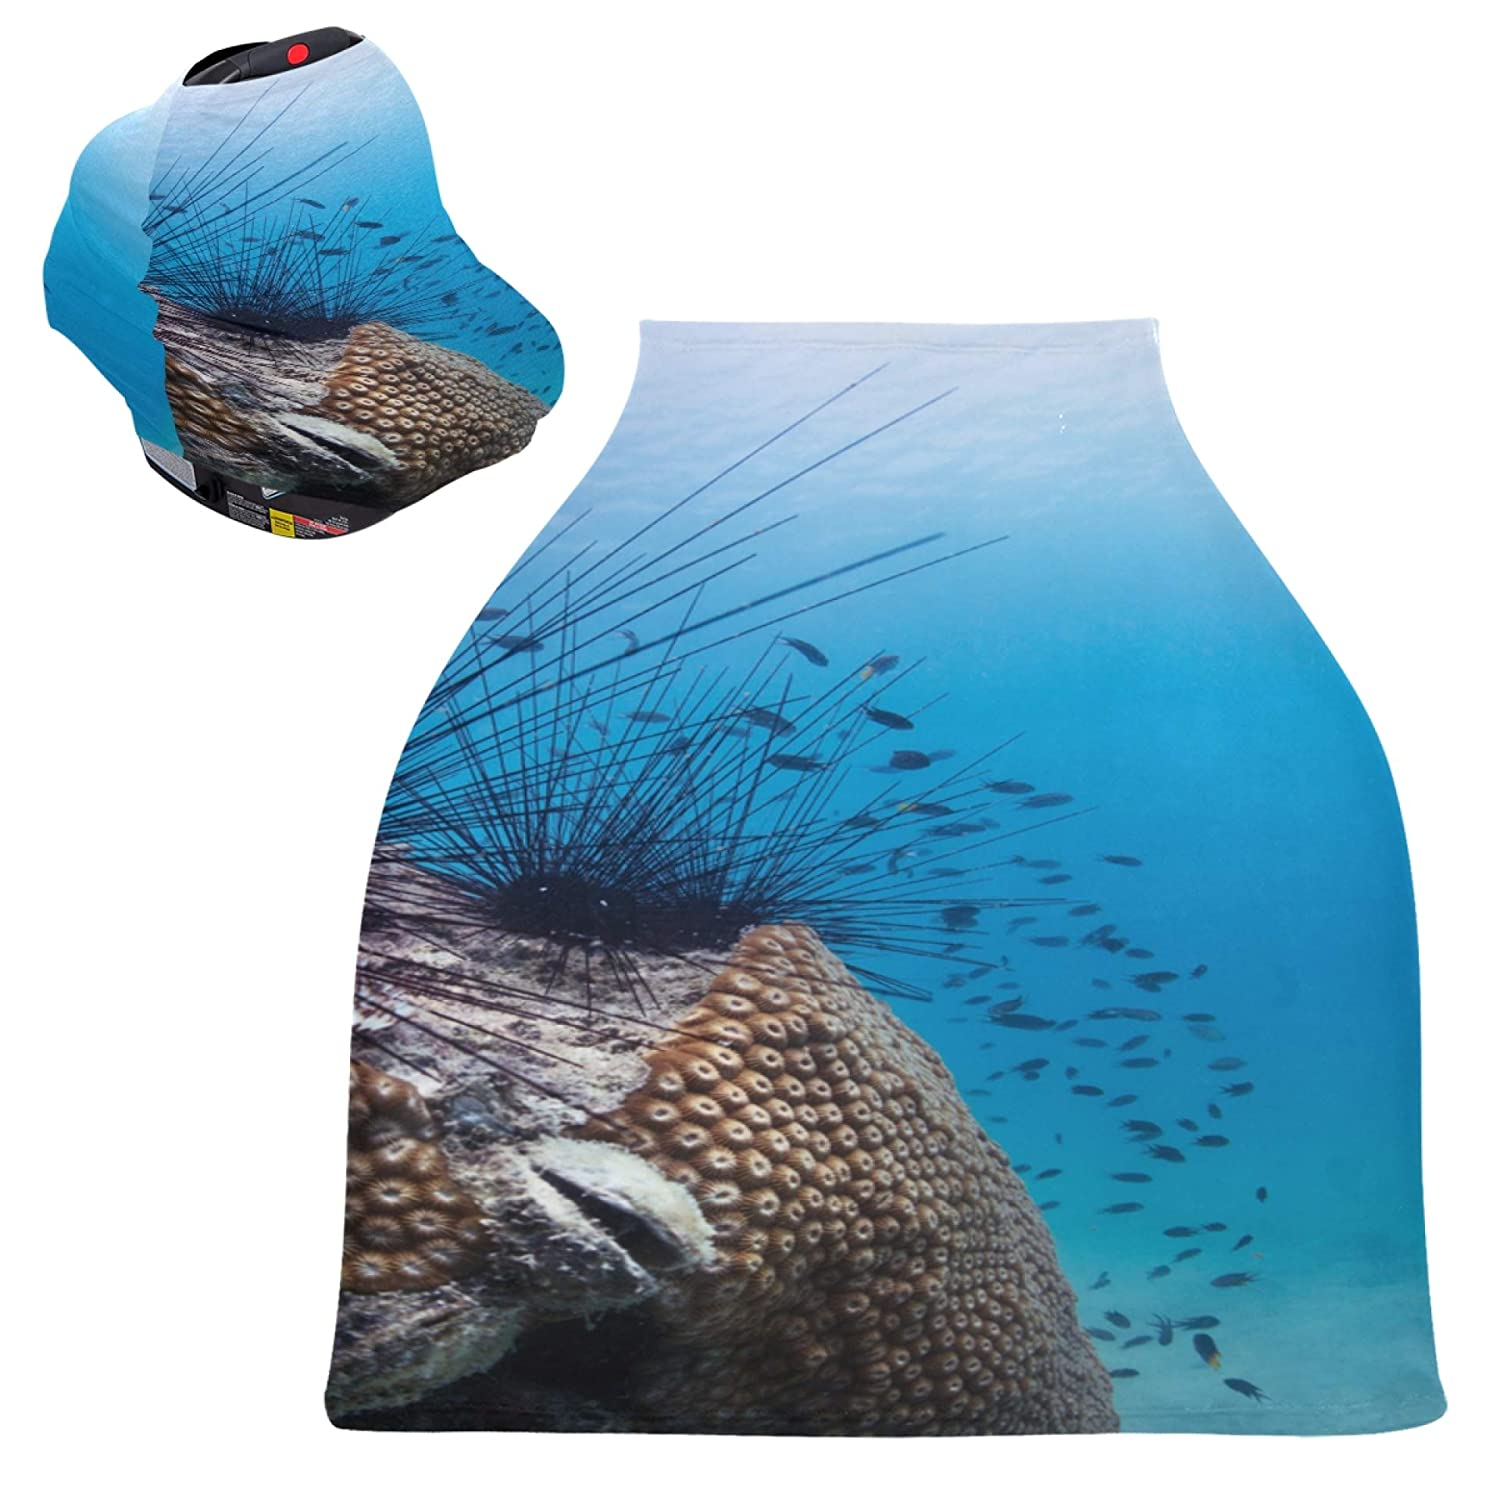 Baby Seat Cover for Shopping Carts Covered Don't miss the campaign with Urchin Topics on TV Sea Thorn